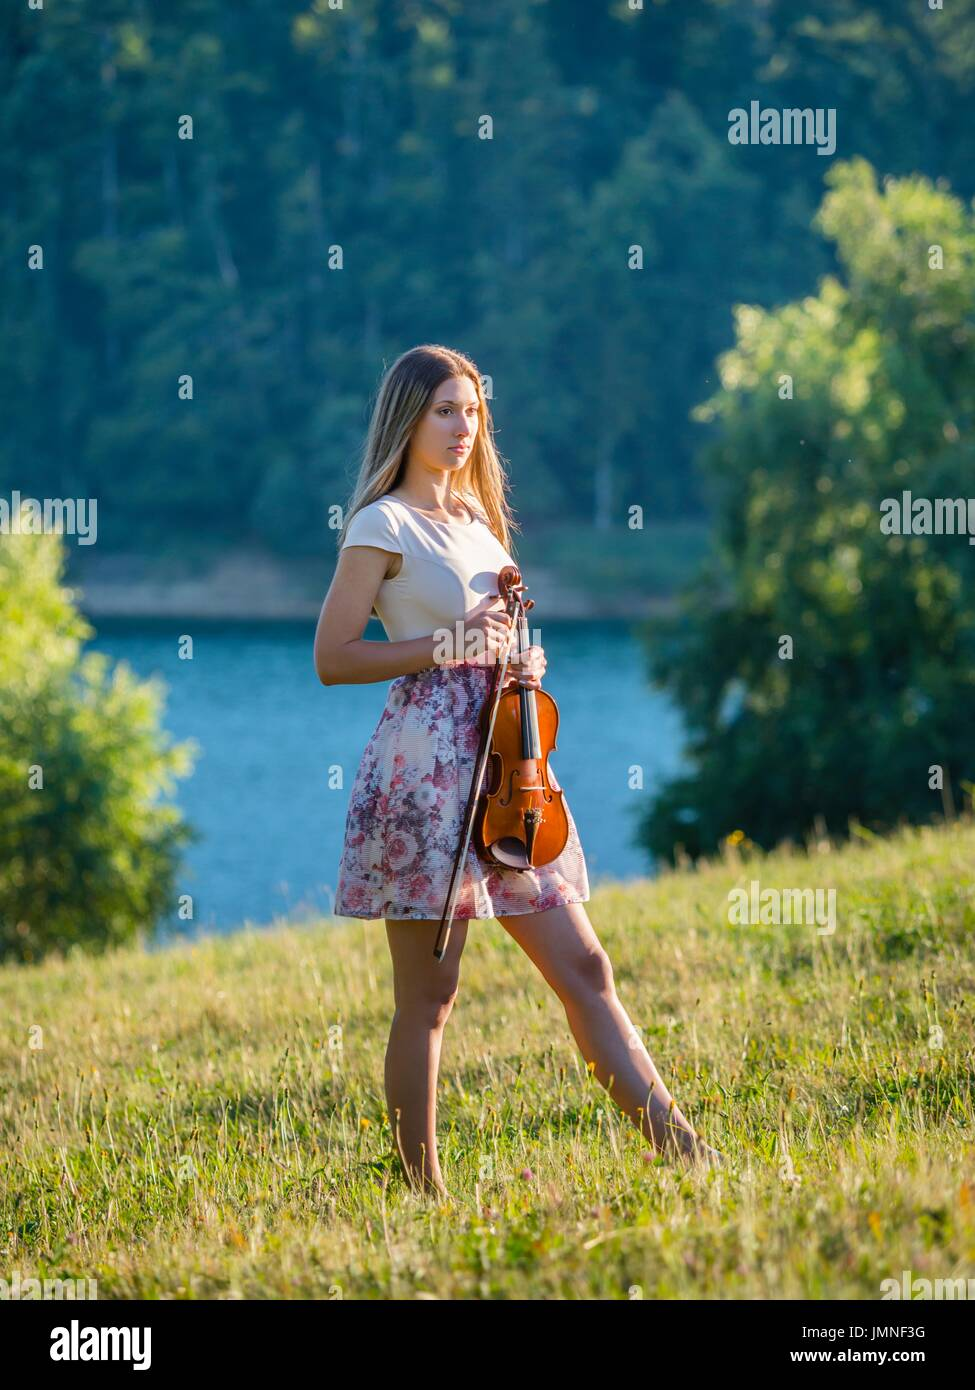 Young female violinist in nature near lake nostalgia nostalgic in short clothing with model-released release MR Stock Photo